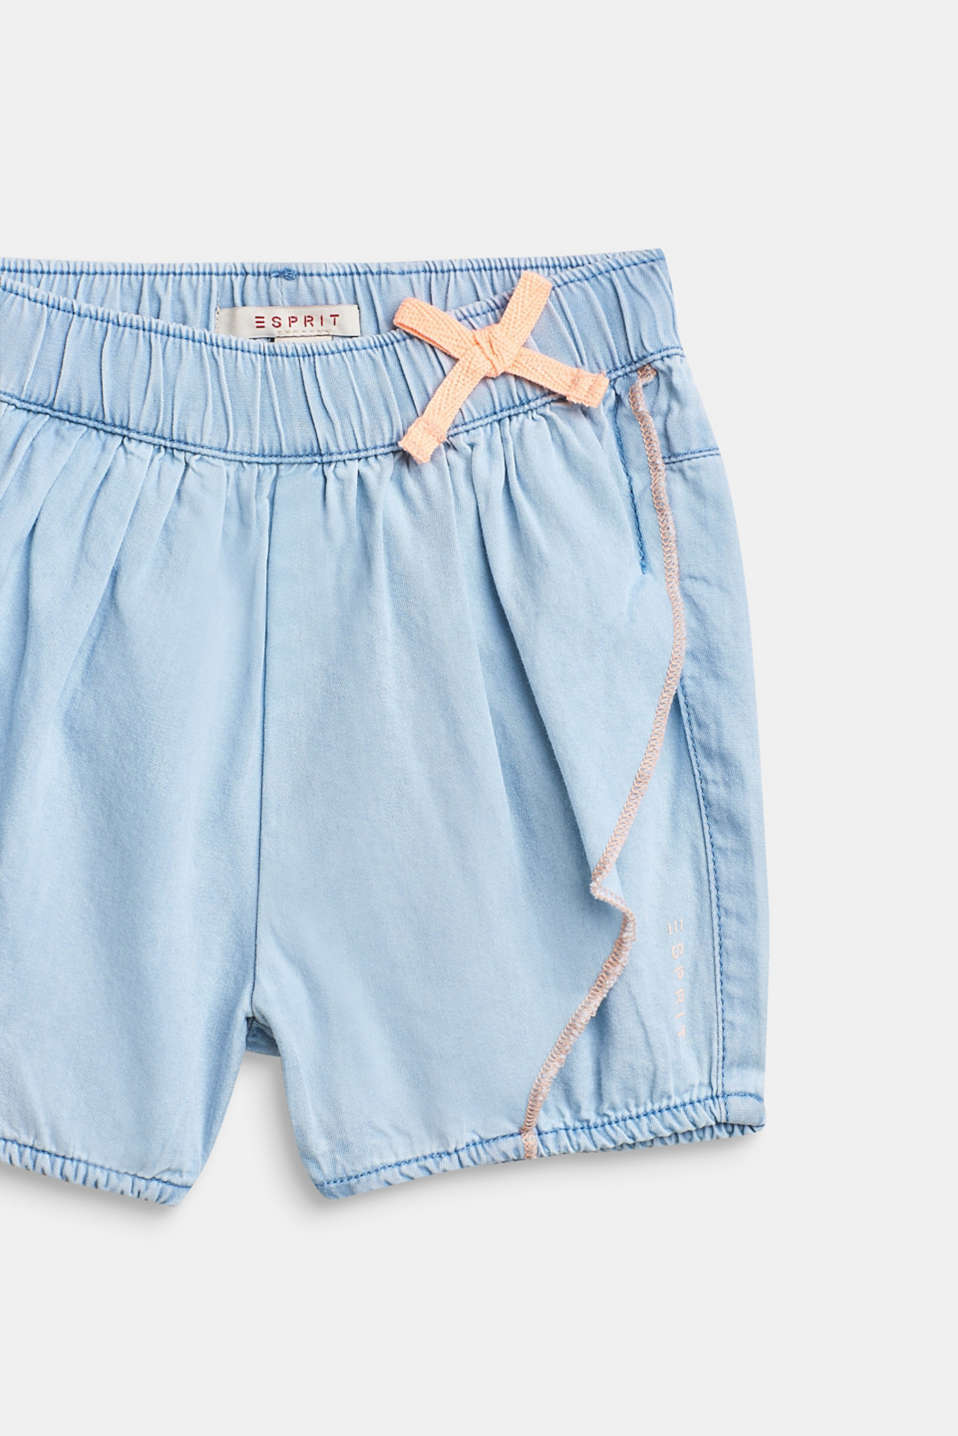 Denim shorts with a flounce detail, 100% cotton, LCBLUE LIGHT WAS, detail image number 2